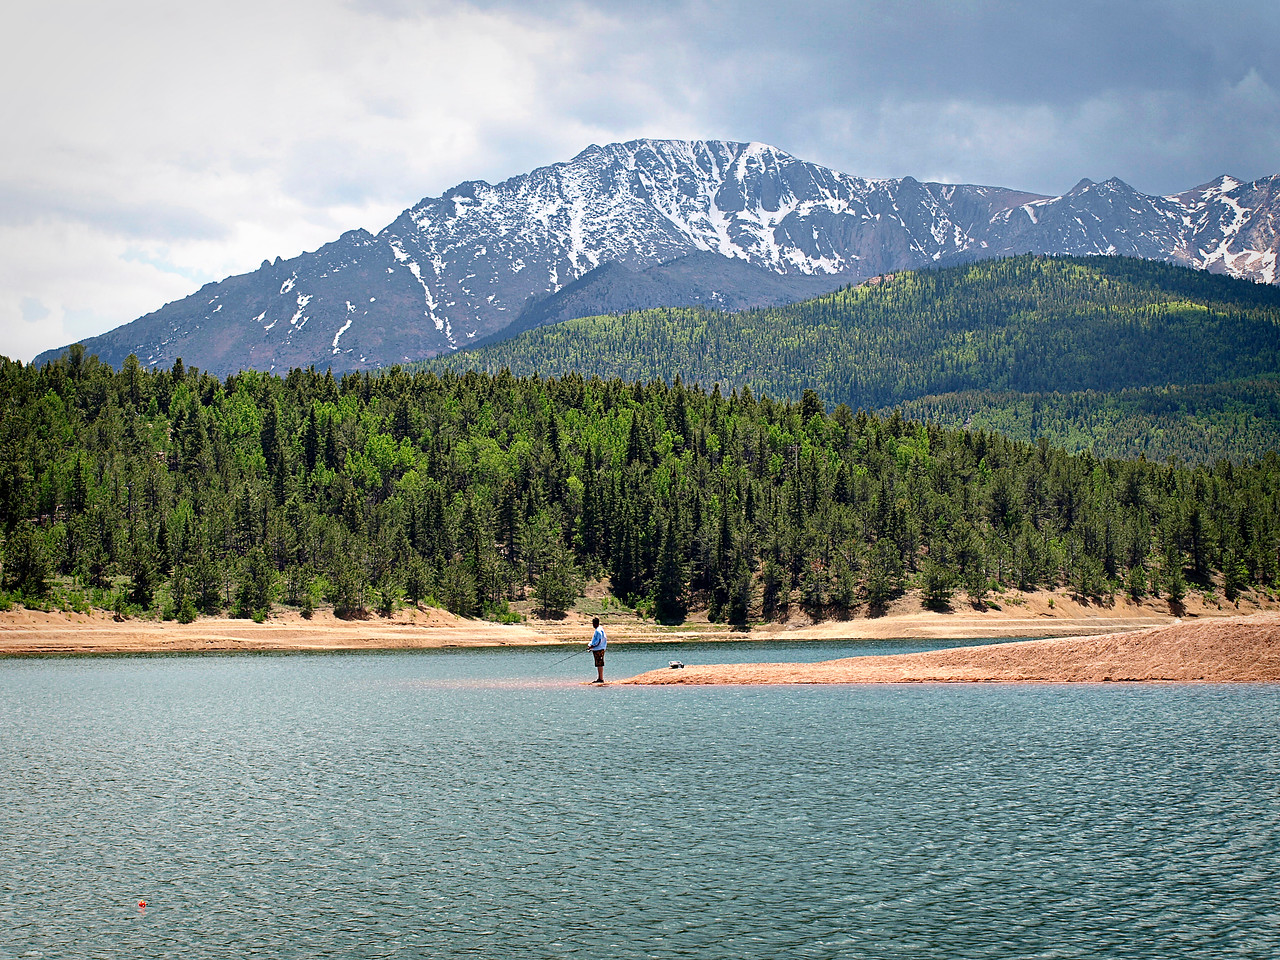 Fishing on Crystal Reservoir - Crystal Reservoir is one of the stops on the way to Pike's Peak  Order Code: C4